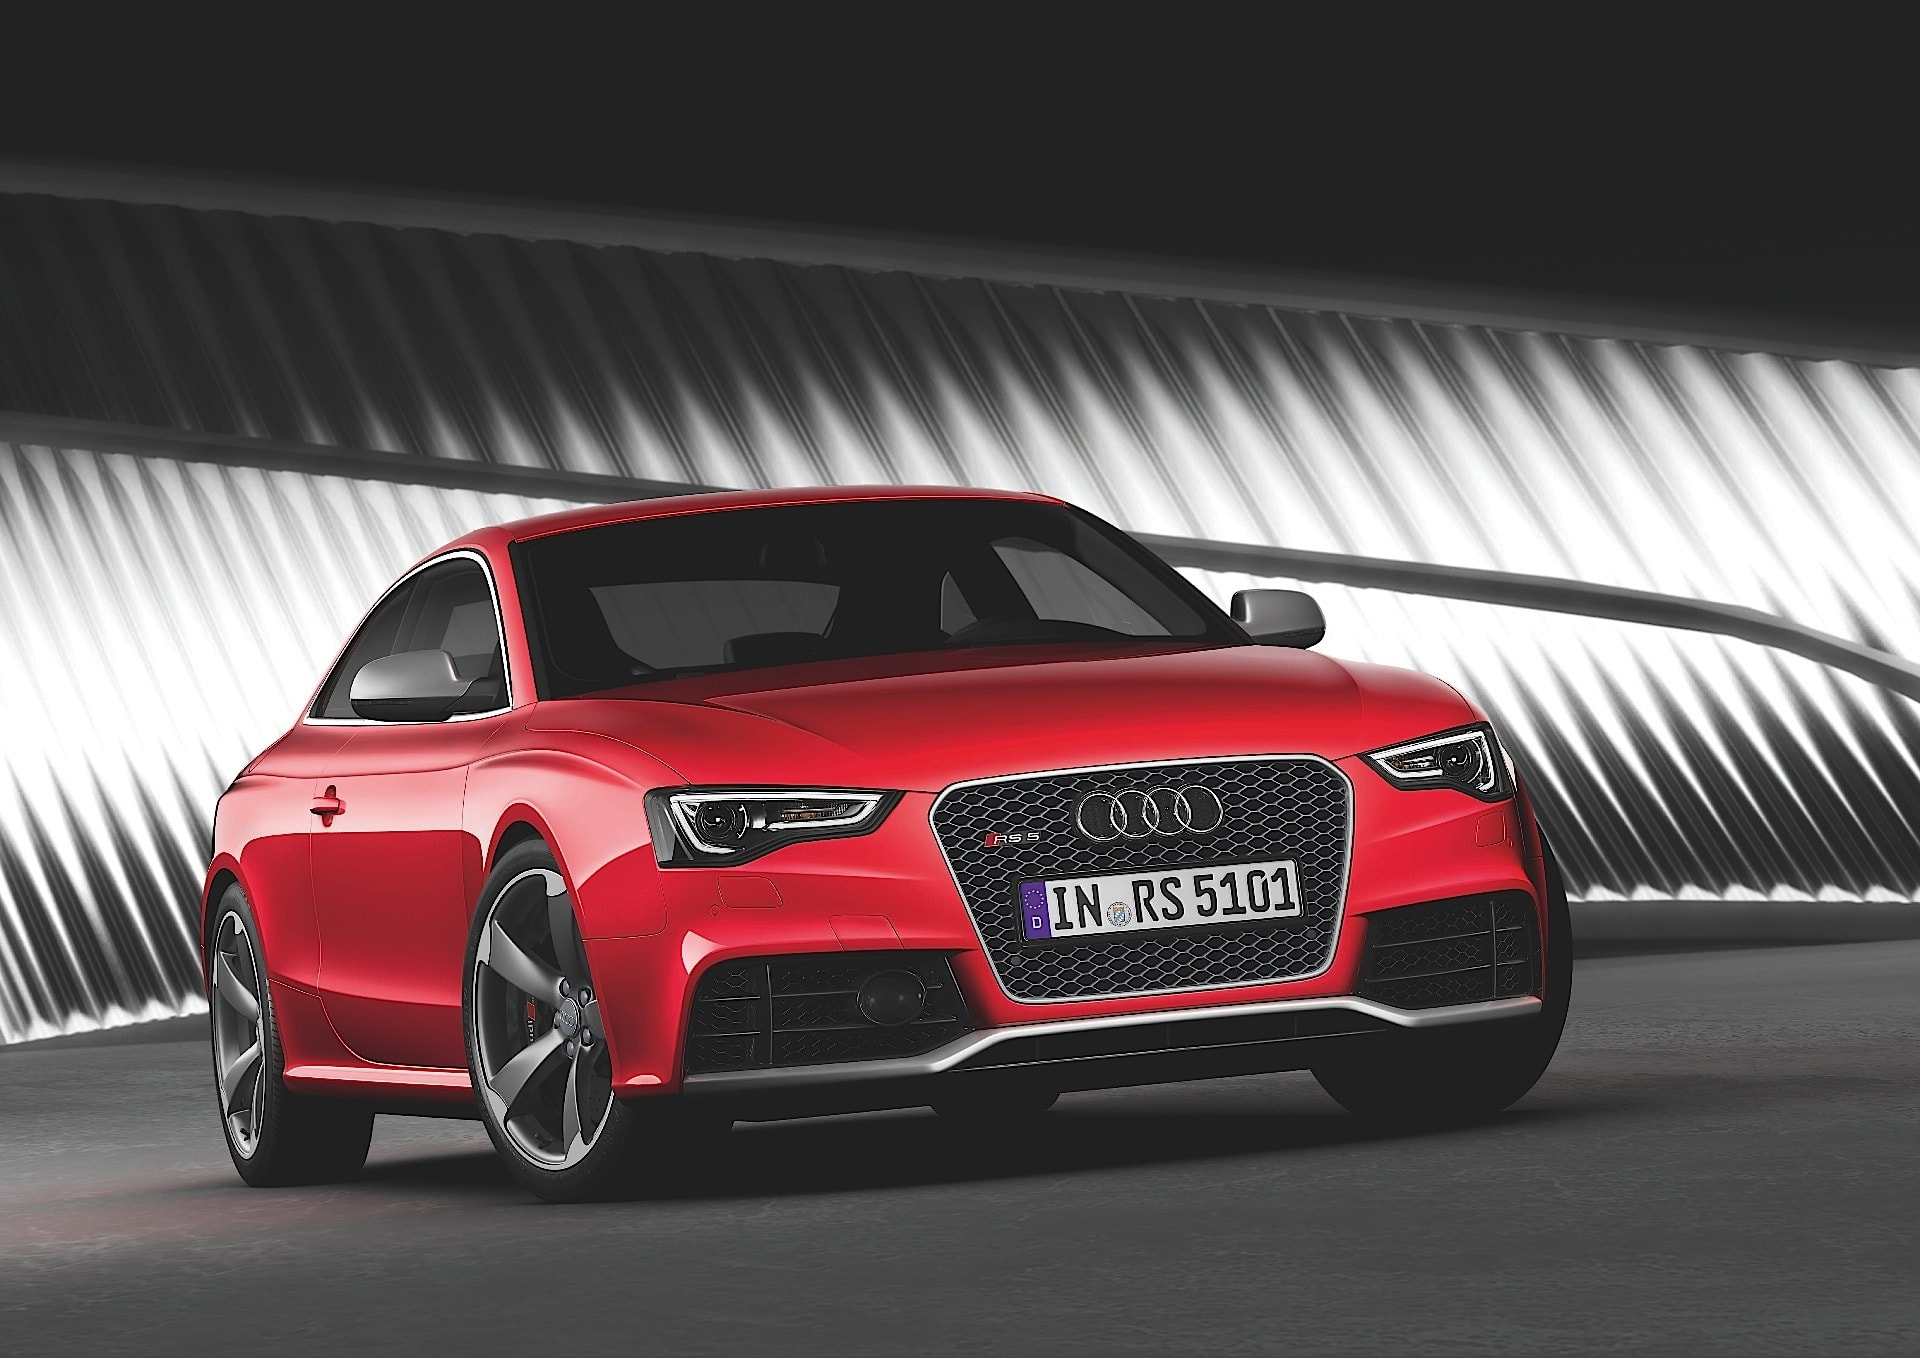 2012 Audi RS5 HD pictures